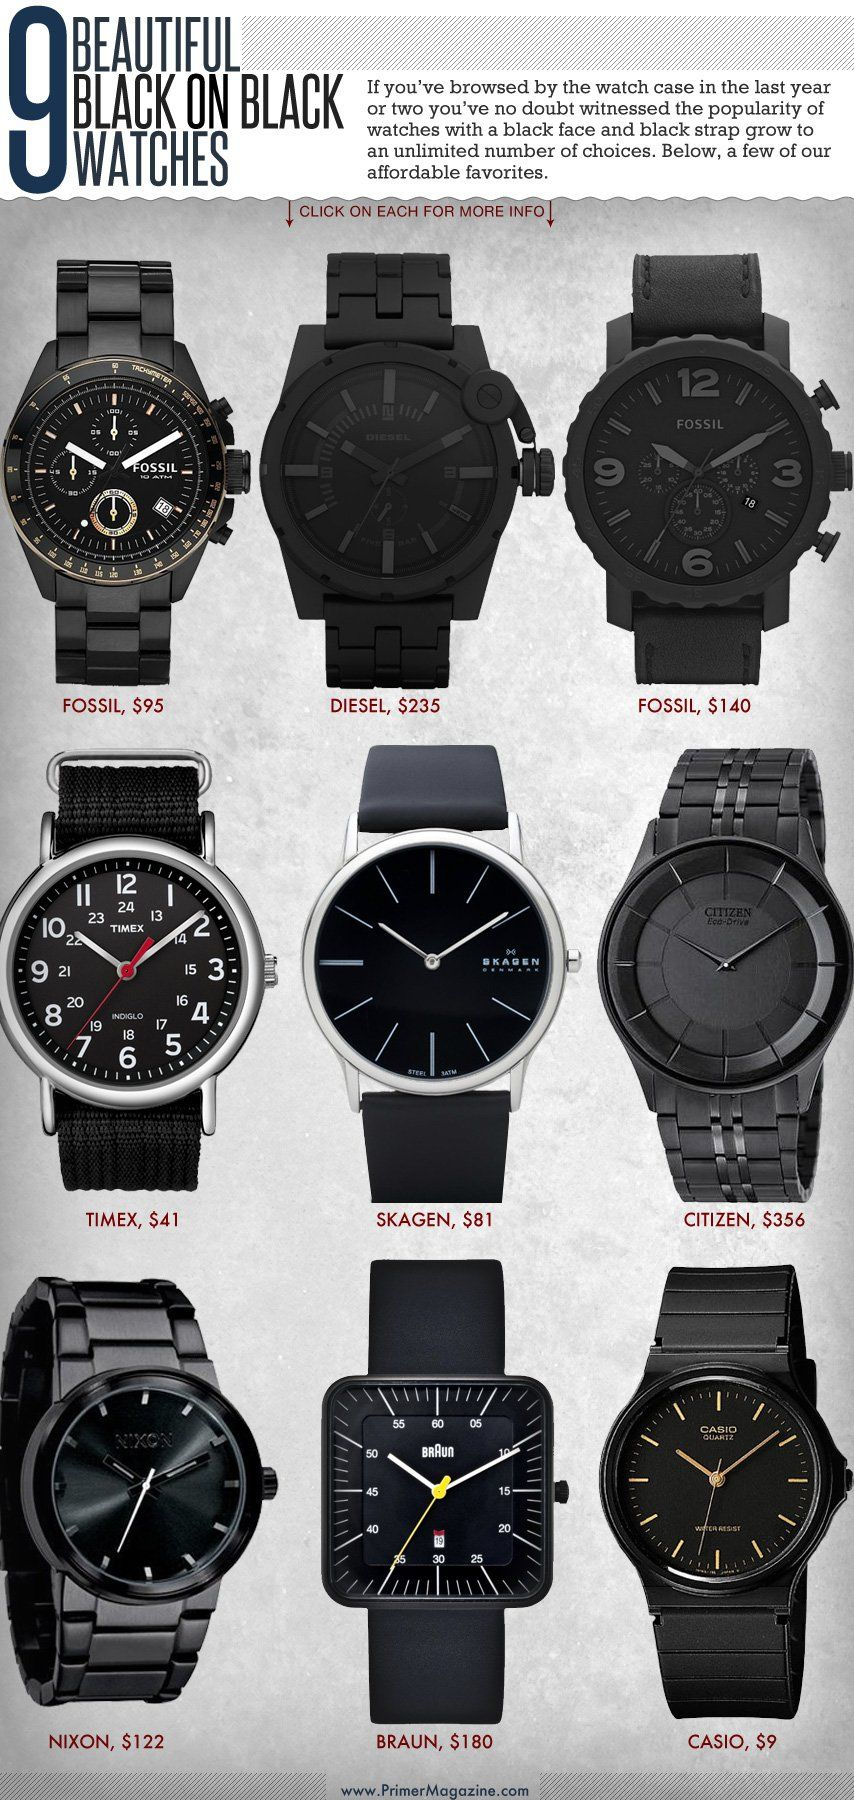 9 Beautiful Black on Black Watches  0a3b654c22